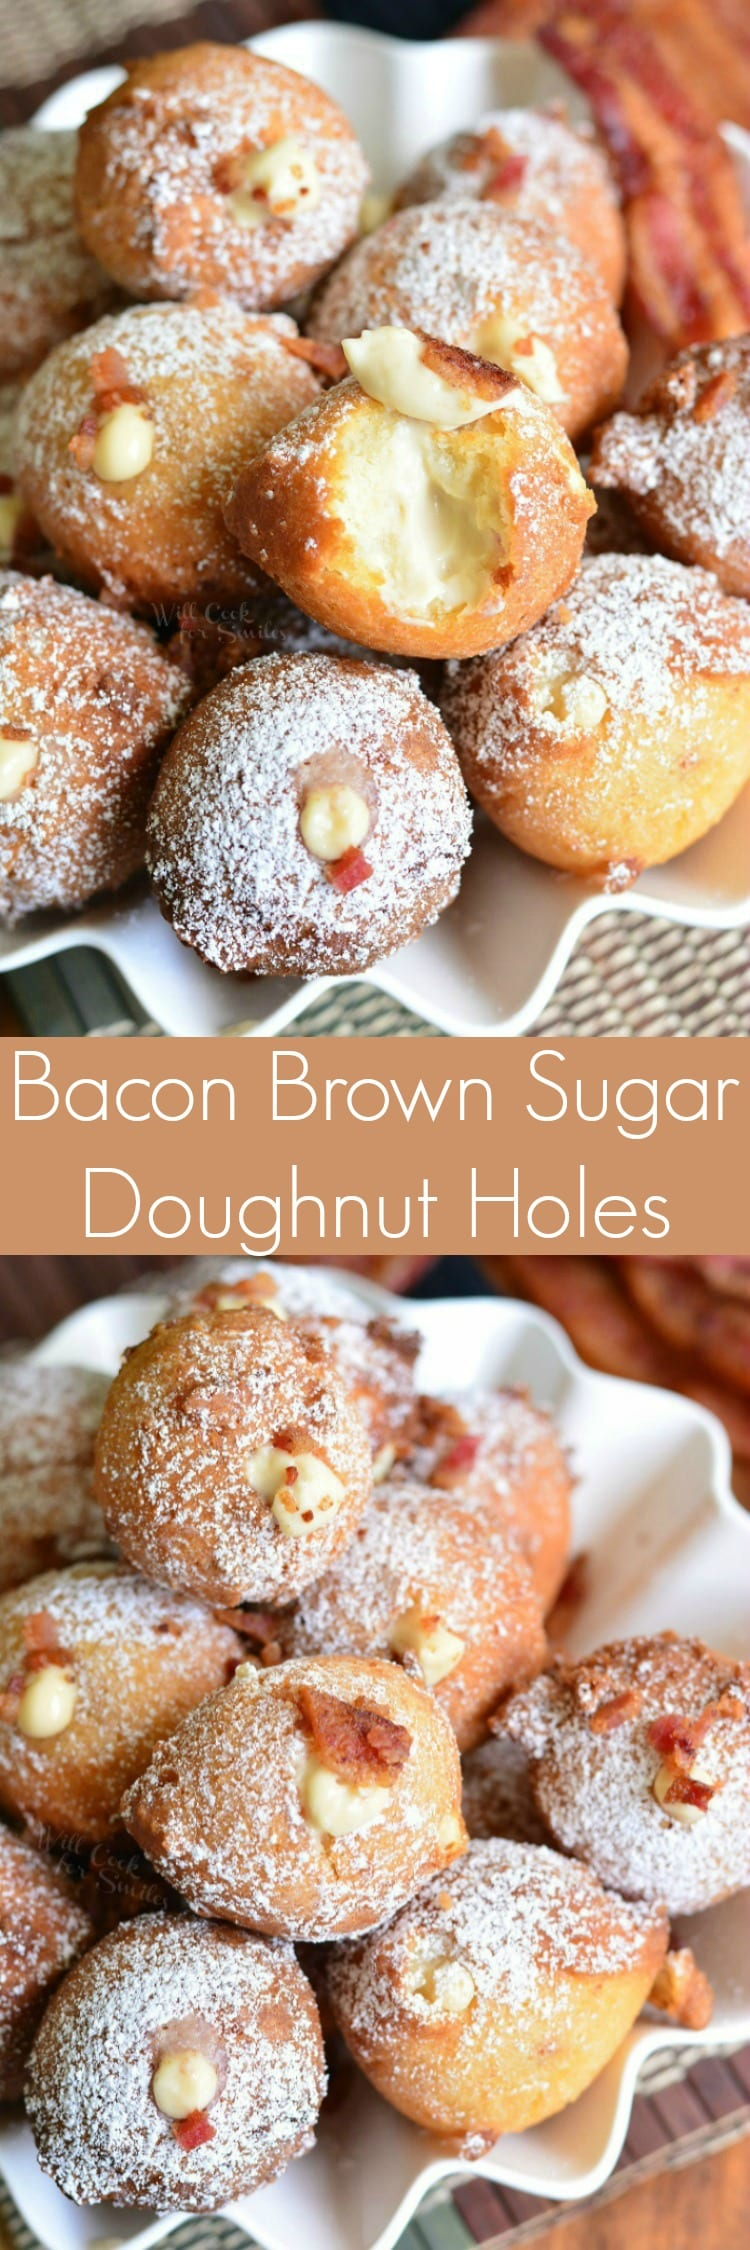 collage top photo of Bacon Brown Sugar Cream Doughnut Holes bottom photo is top view of donuts